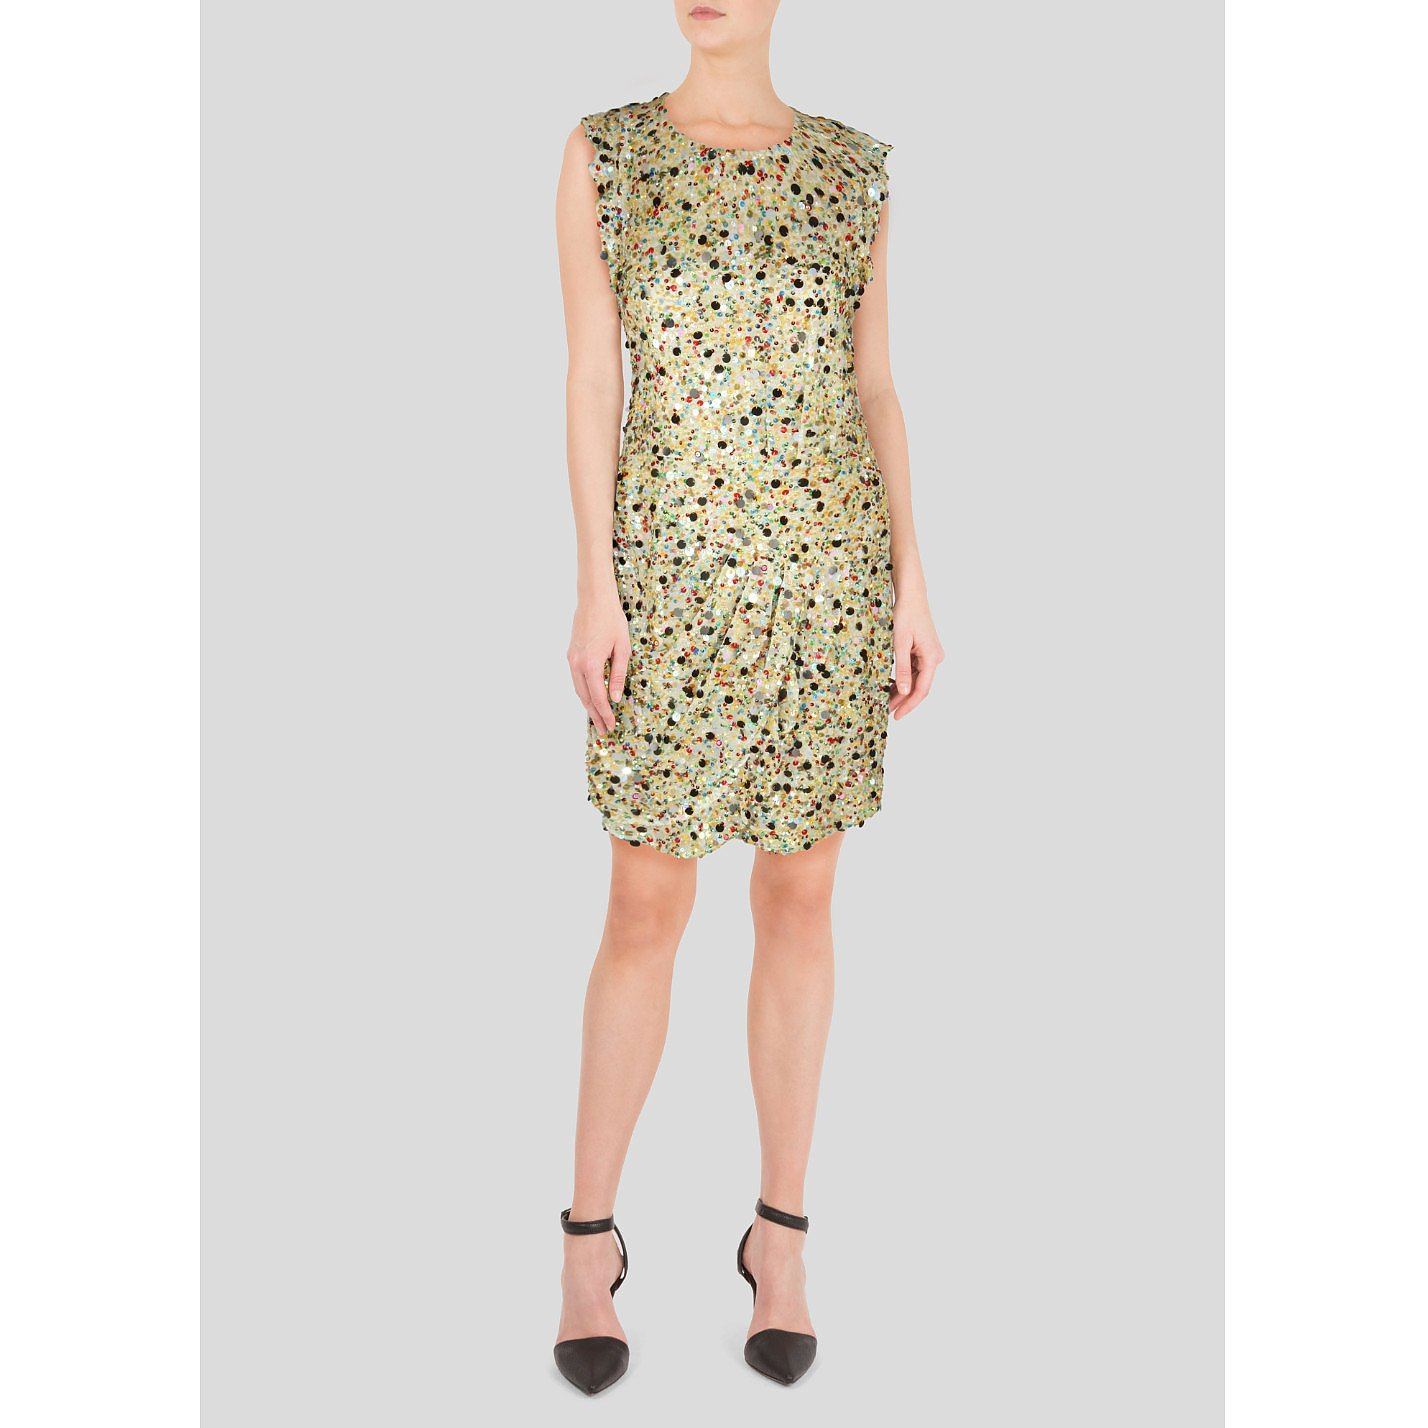 3.1 Phillip Lim Multicolour Sequin Dress